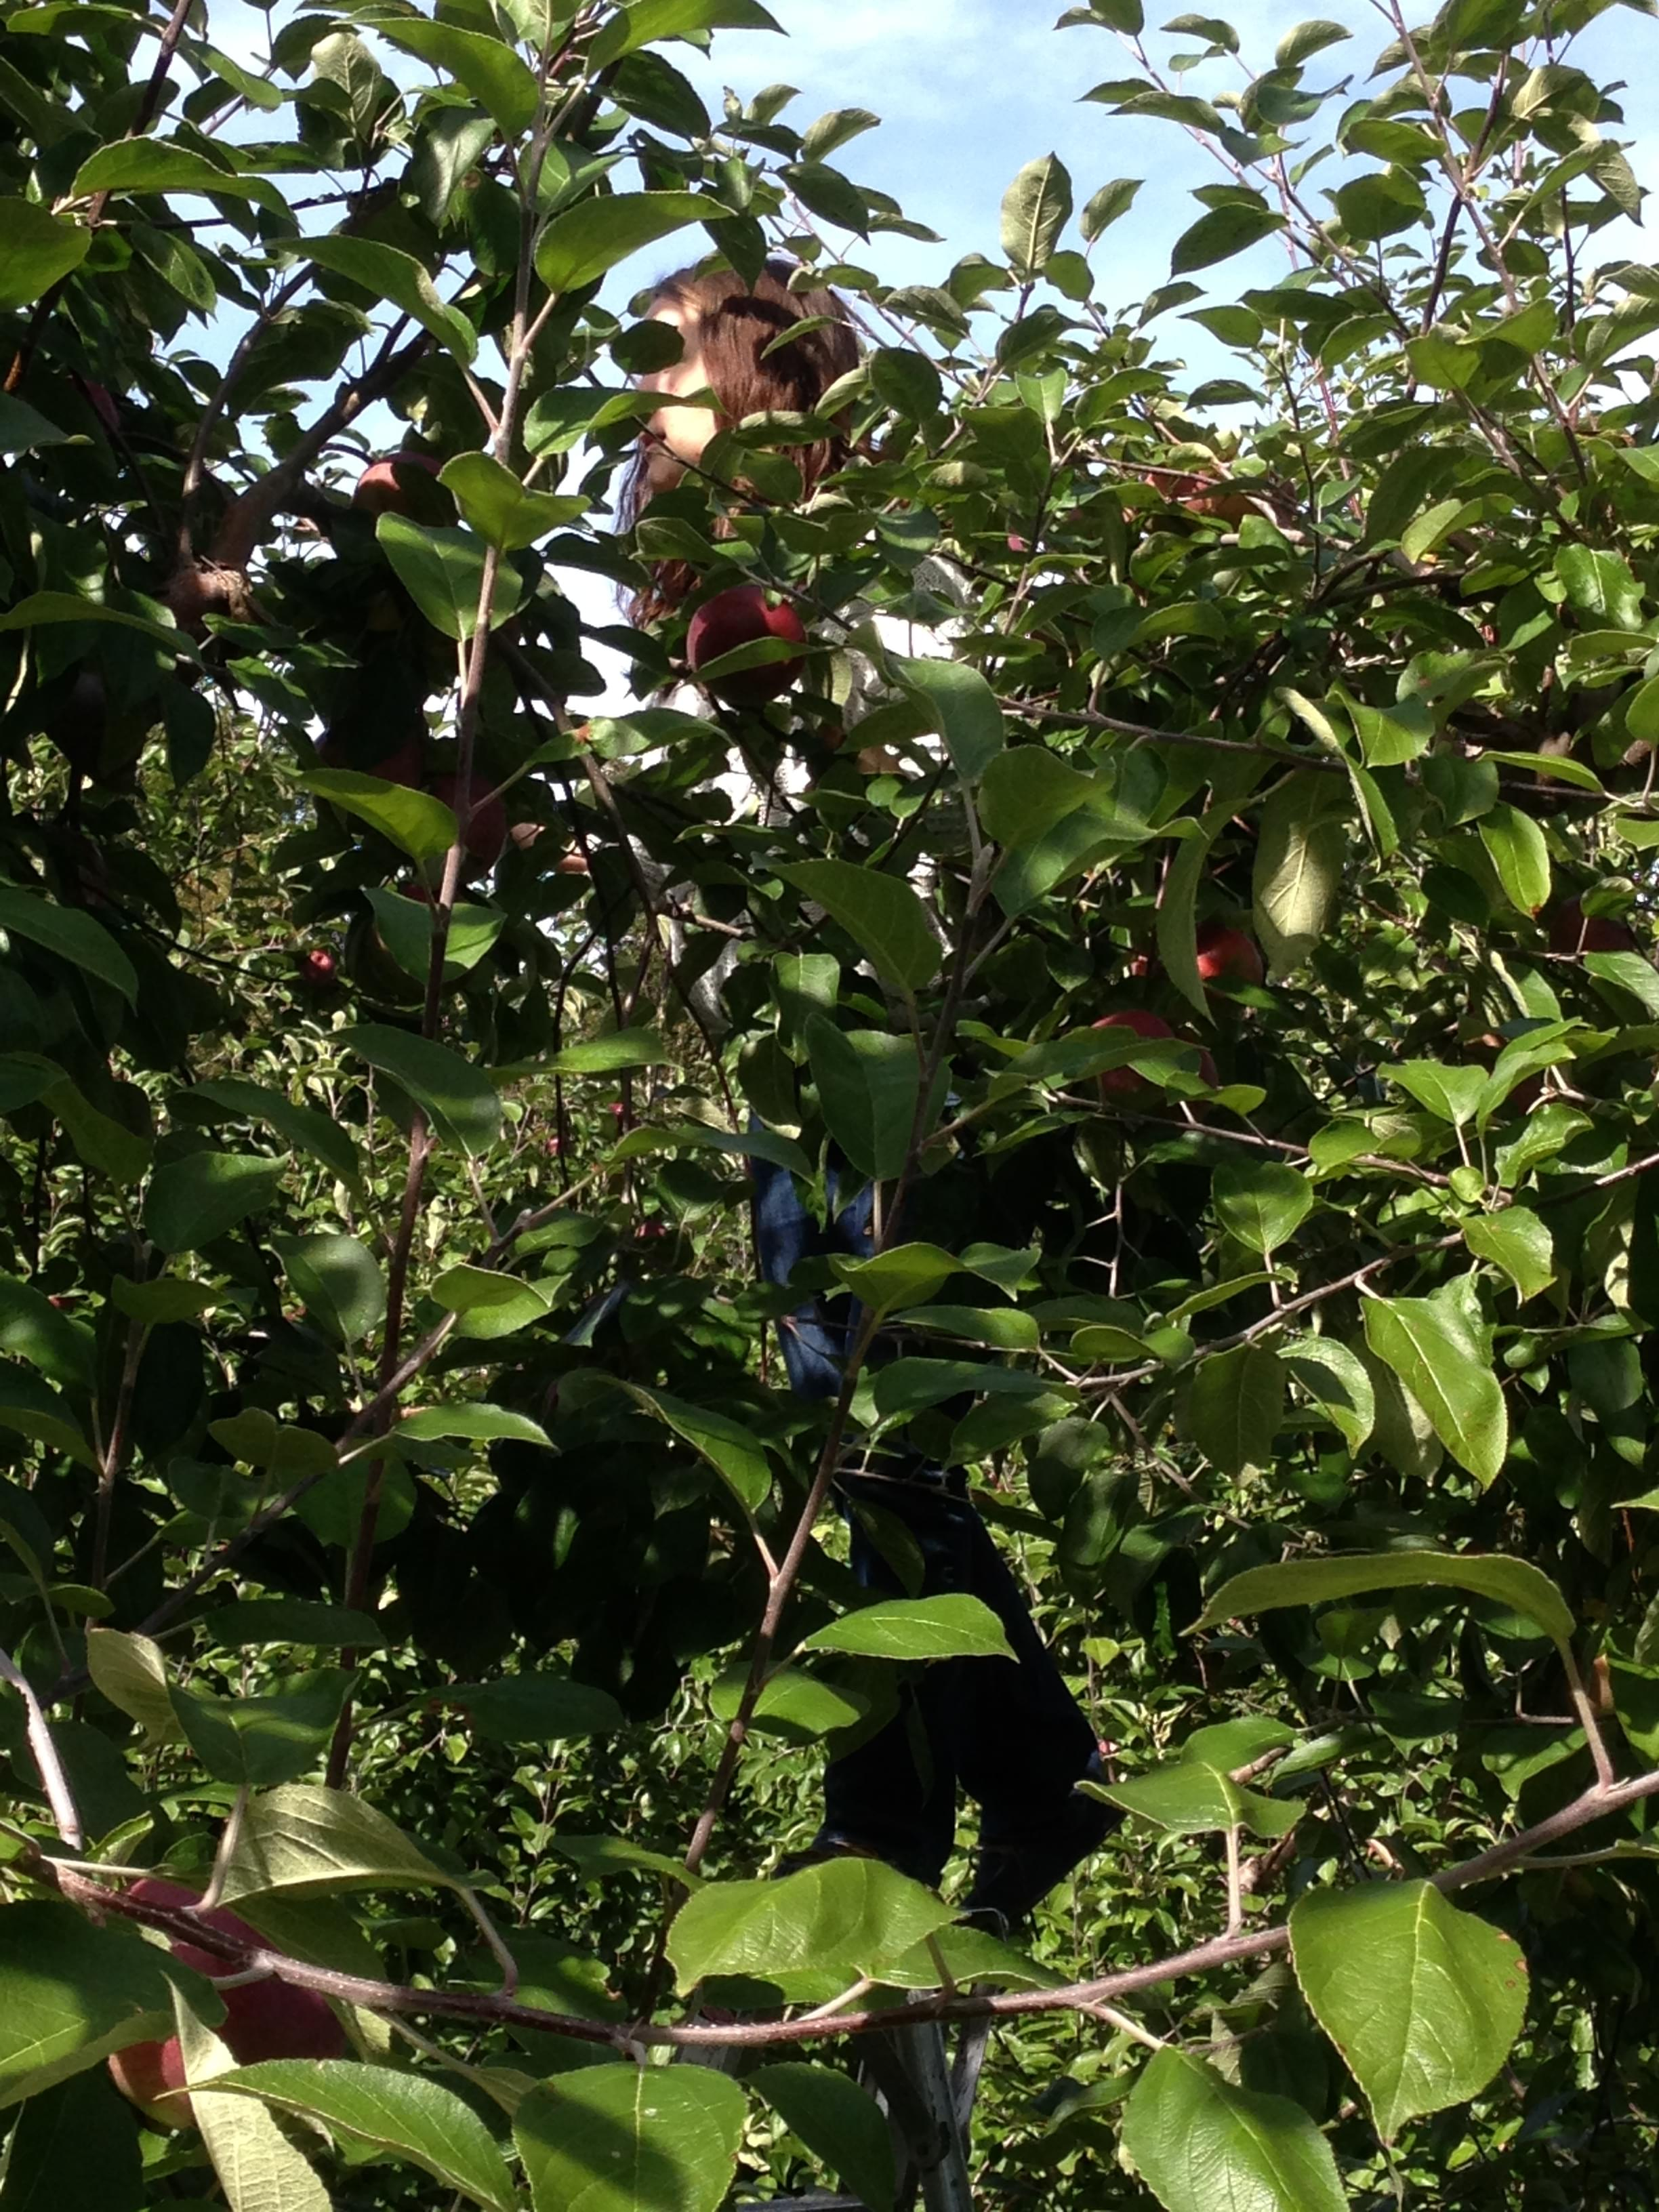 Apple Picking- It's What ALL of CNY Did This Weekend